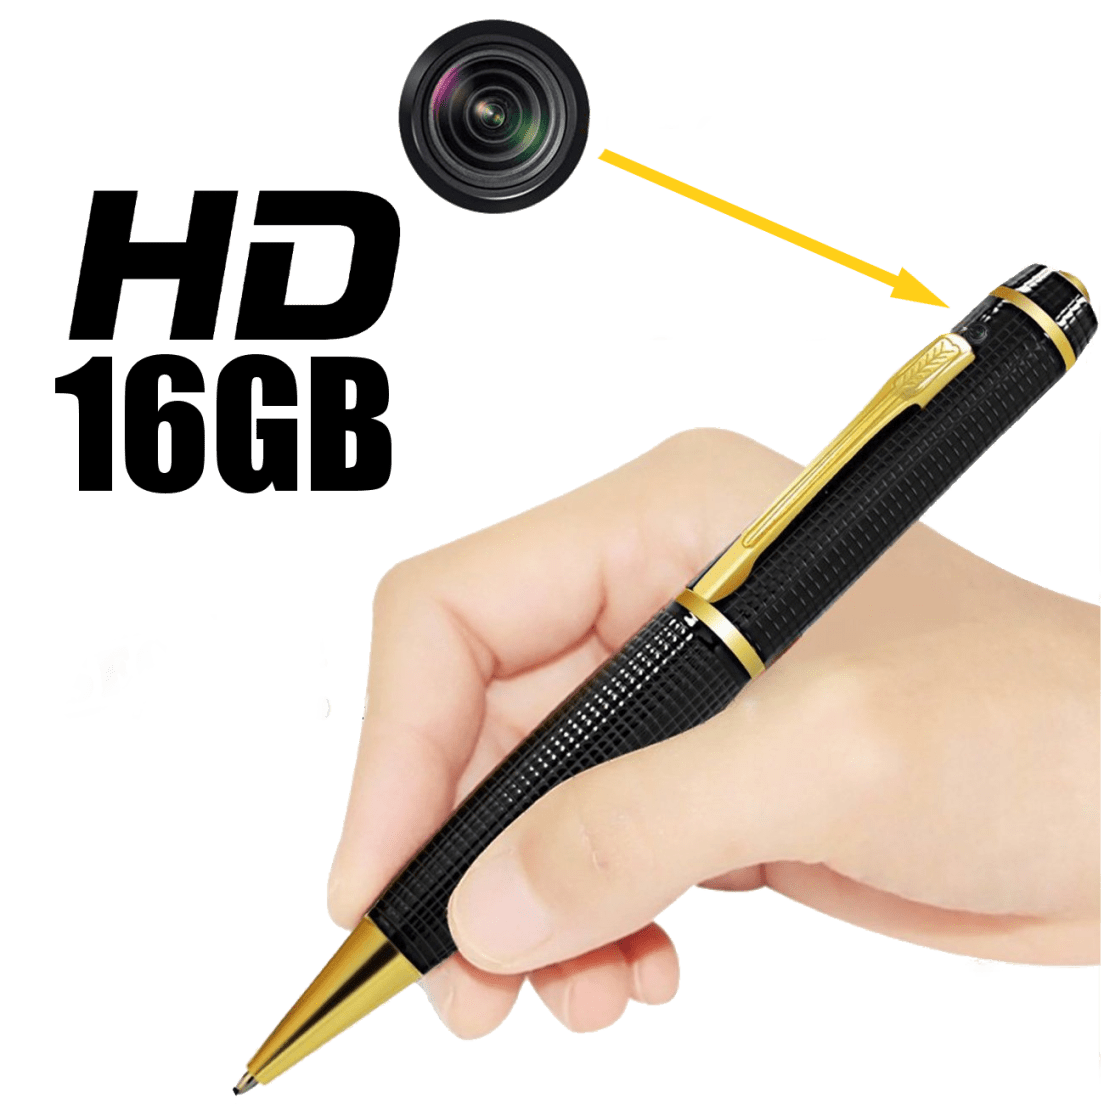 2b2e7848b900 Q-See 16GB HD Video Spy Pen with Elite Safety Software